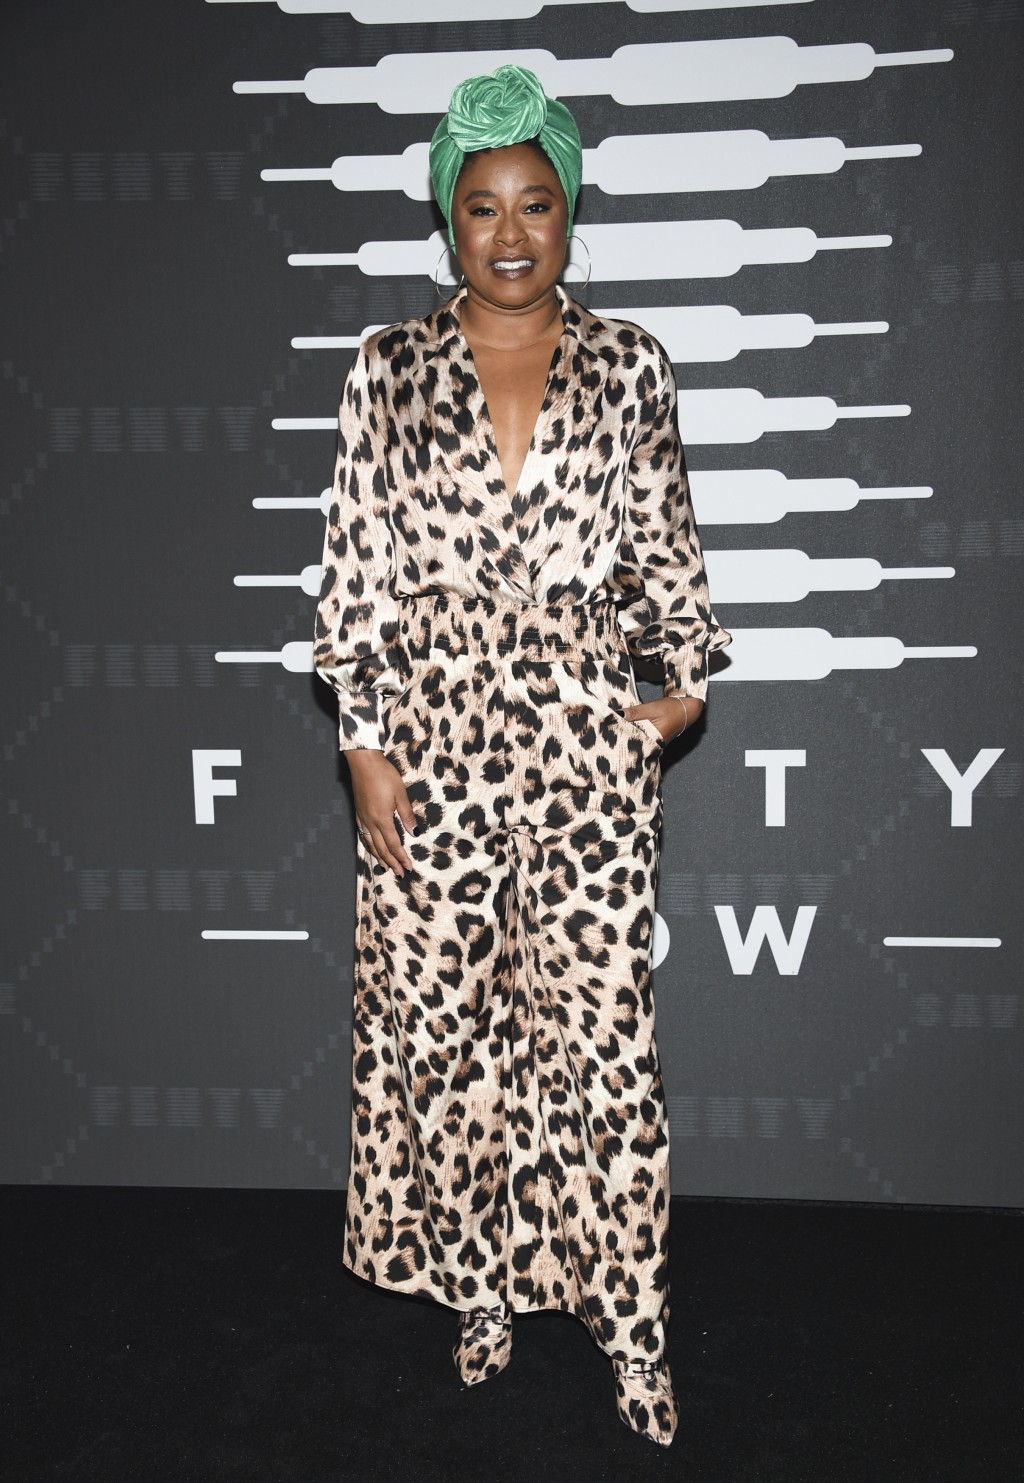 Comedian Phoebe Robinson attends the Spring/Summer 2020 Savage X Fenty show, presented by Amazon Prime, at the Barclays Center on Tuesday, Sept, 10, 2...